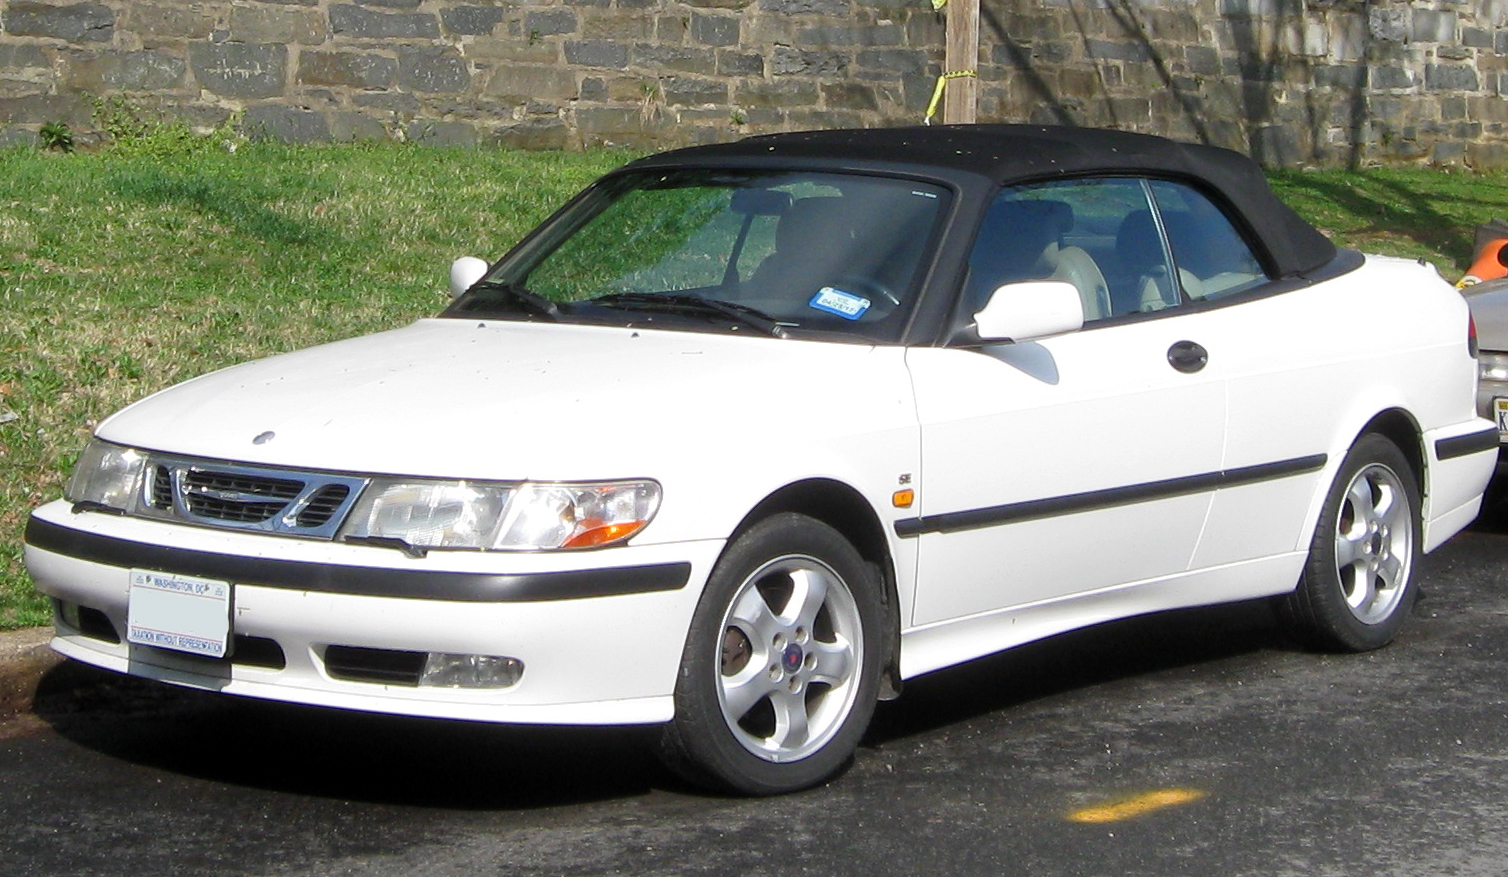 file 1st saab 9 3 convertible 03 20 2012 jpg wikimedia commons. Black Bedroom Furniture Sets. Home Design Ideas